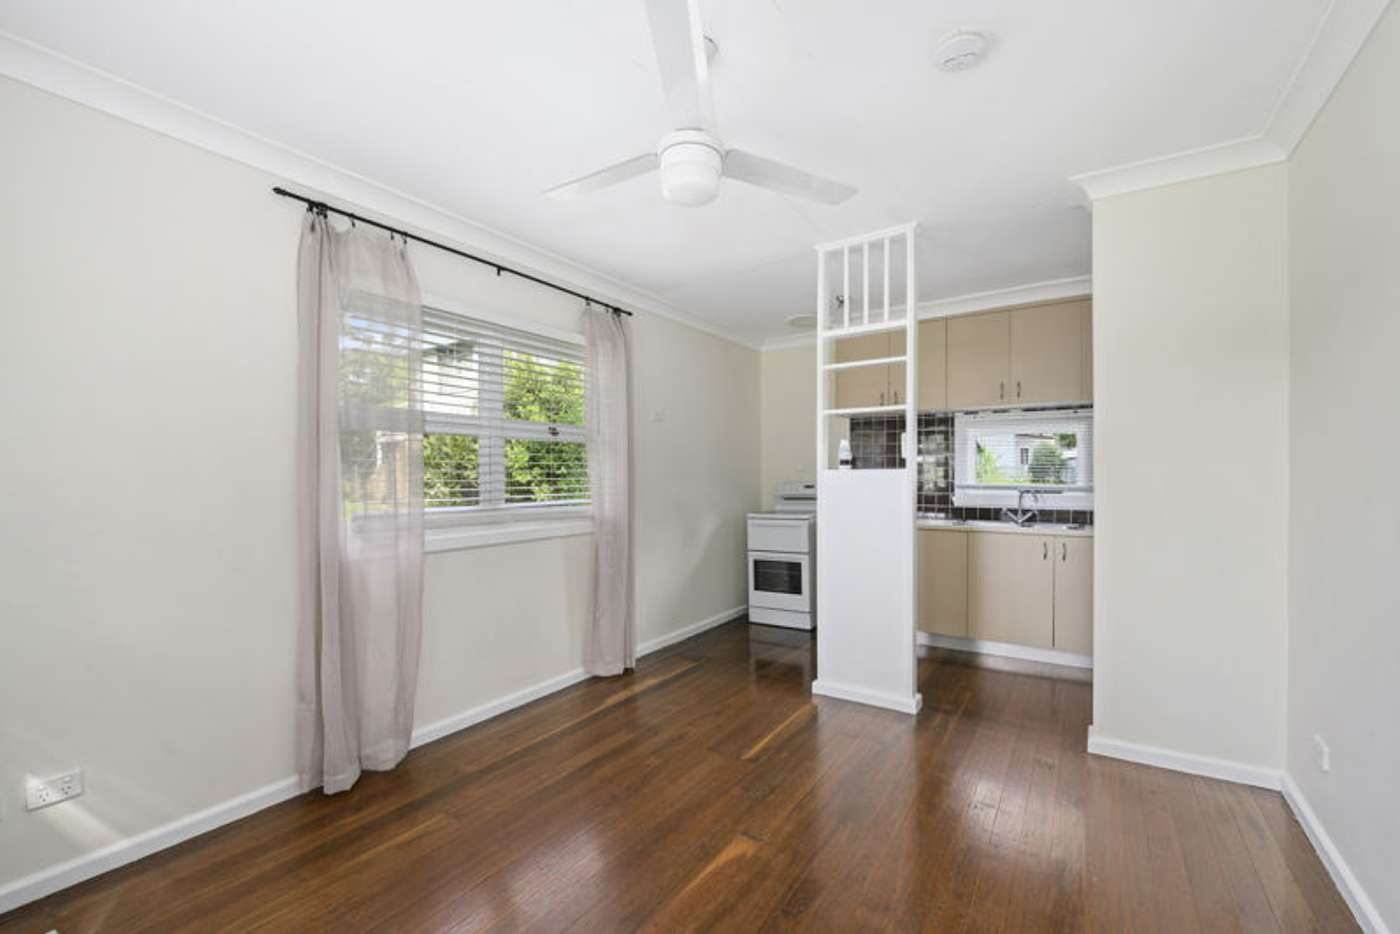 Sixth view of Homely house listing, 22 Hammond Street, Bellingen NSW 2454